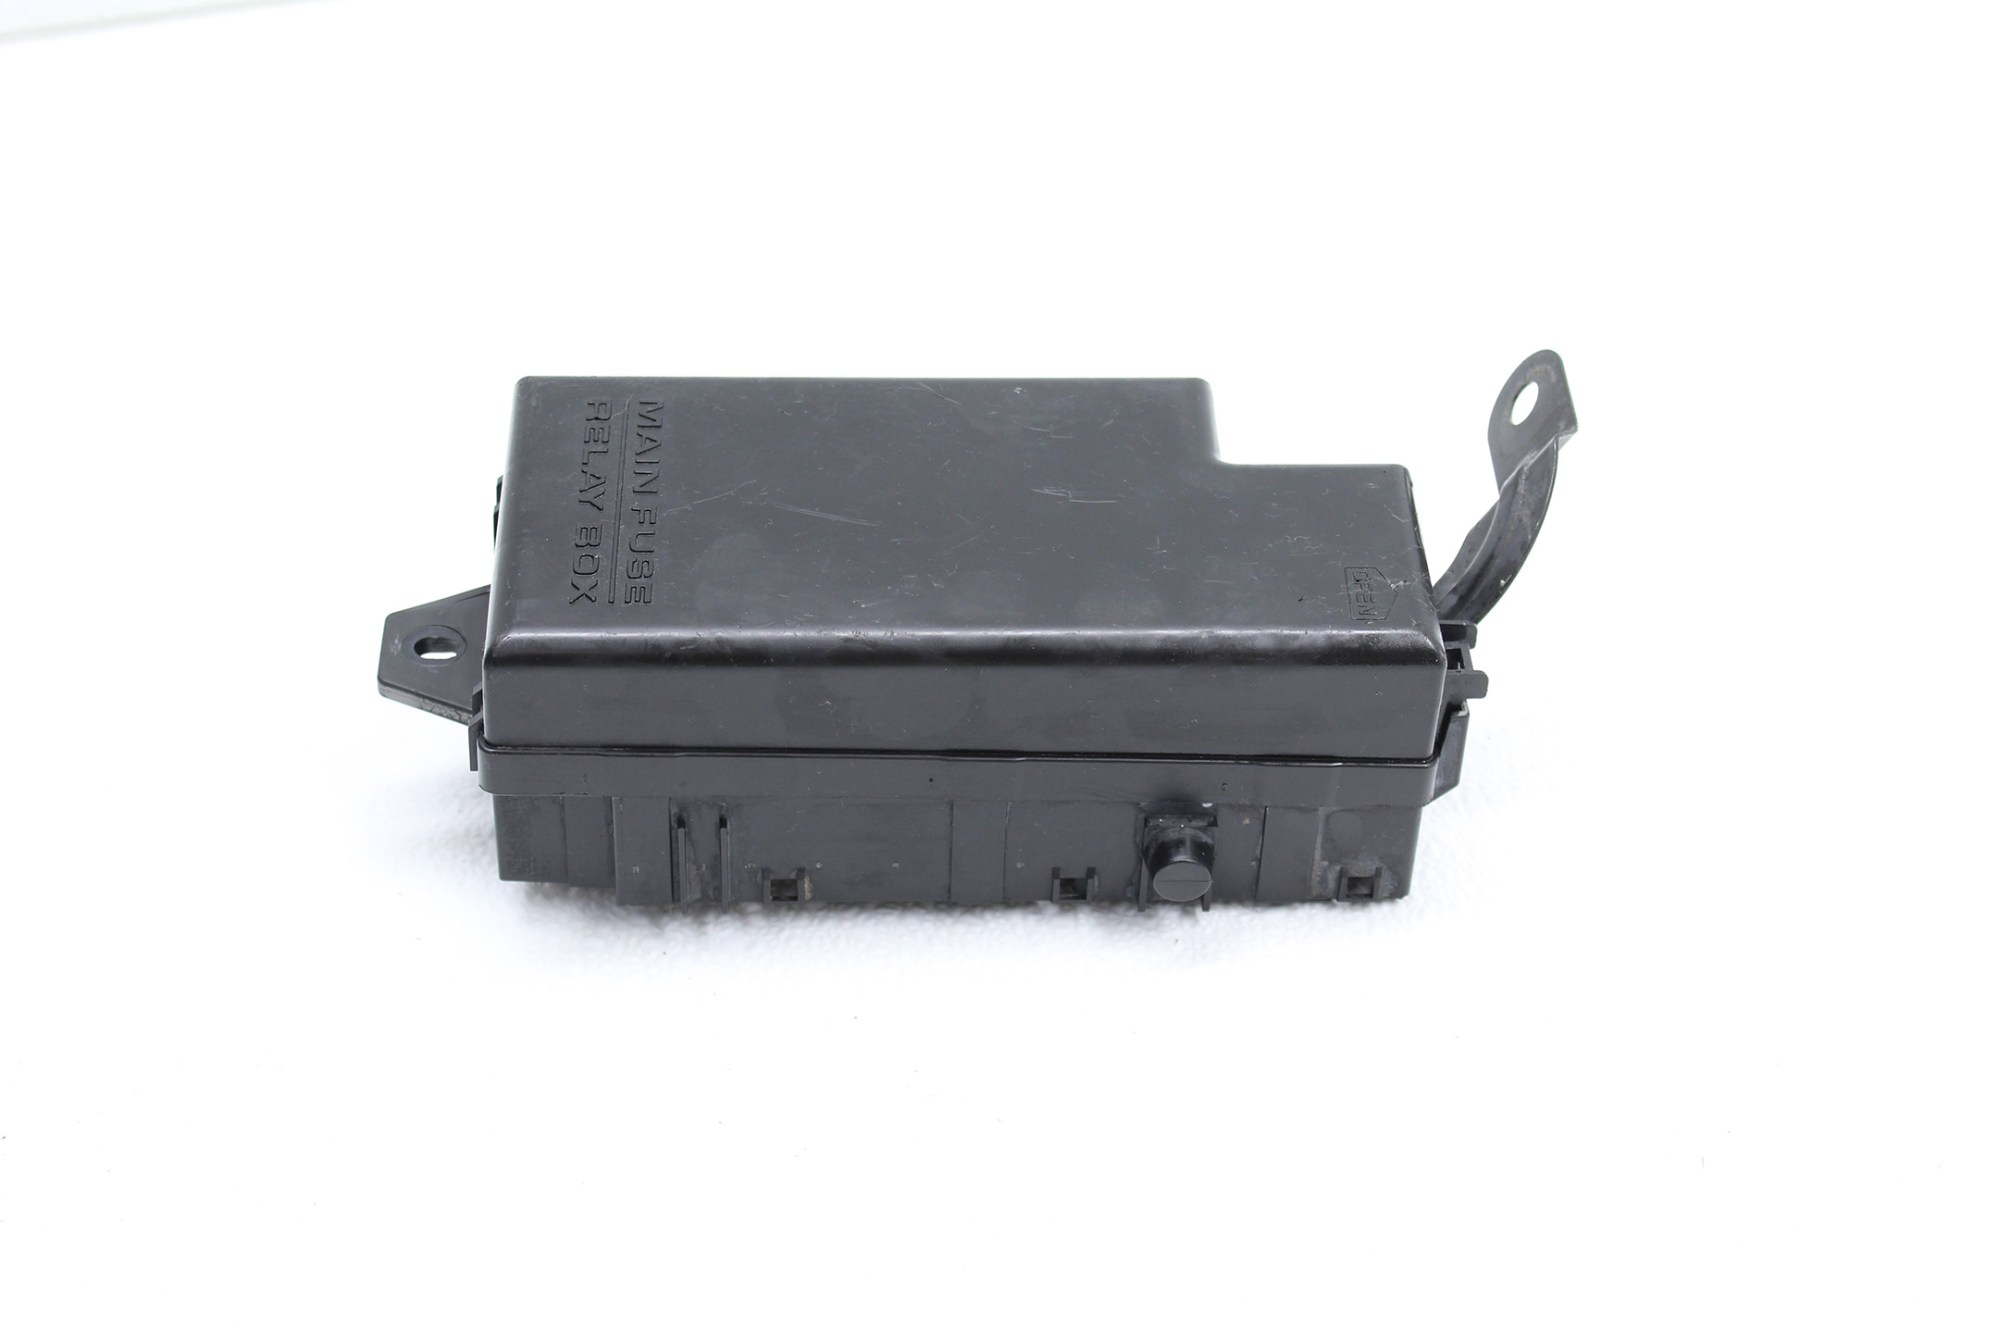 hight resolution of 1998 2001 subaru impreza 2 5 rs gc8 engine fuse box relay cover assembly